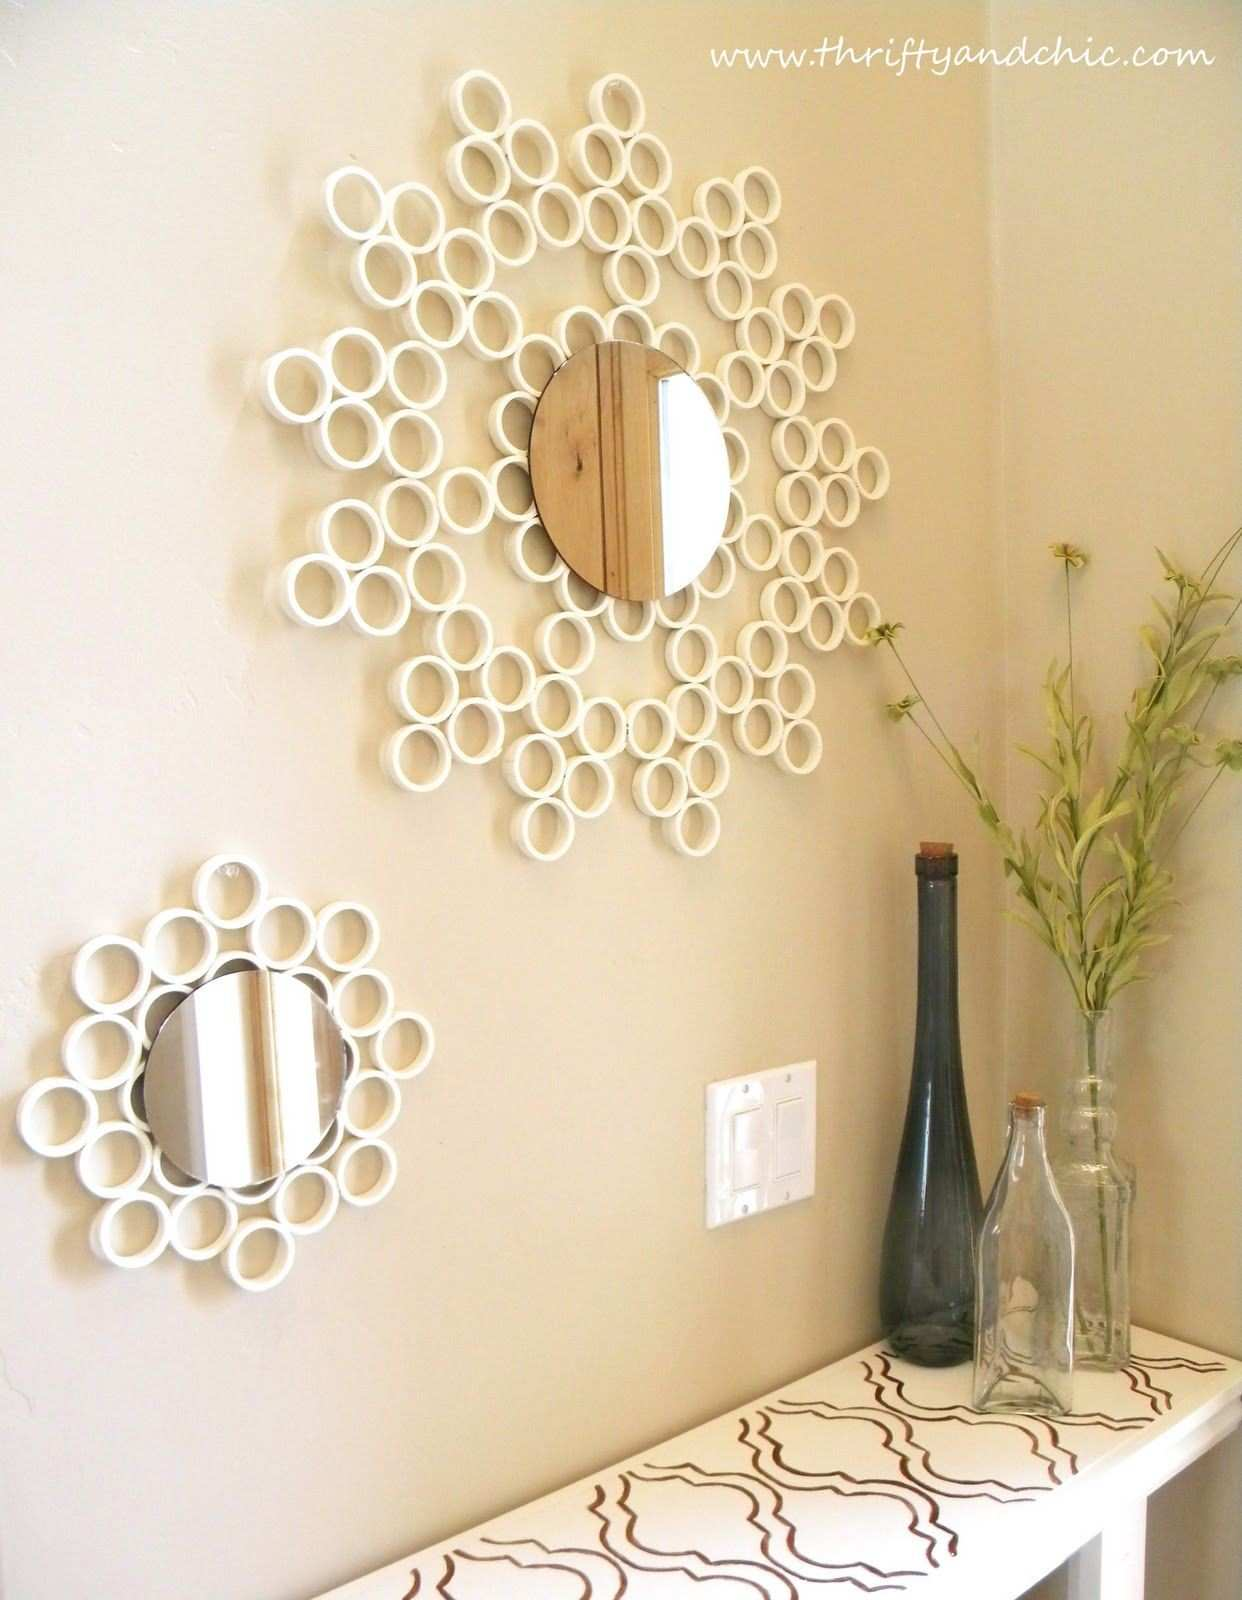 PVC Pipe Mirror Pinterest